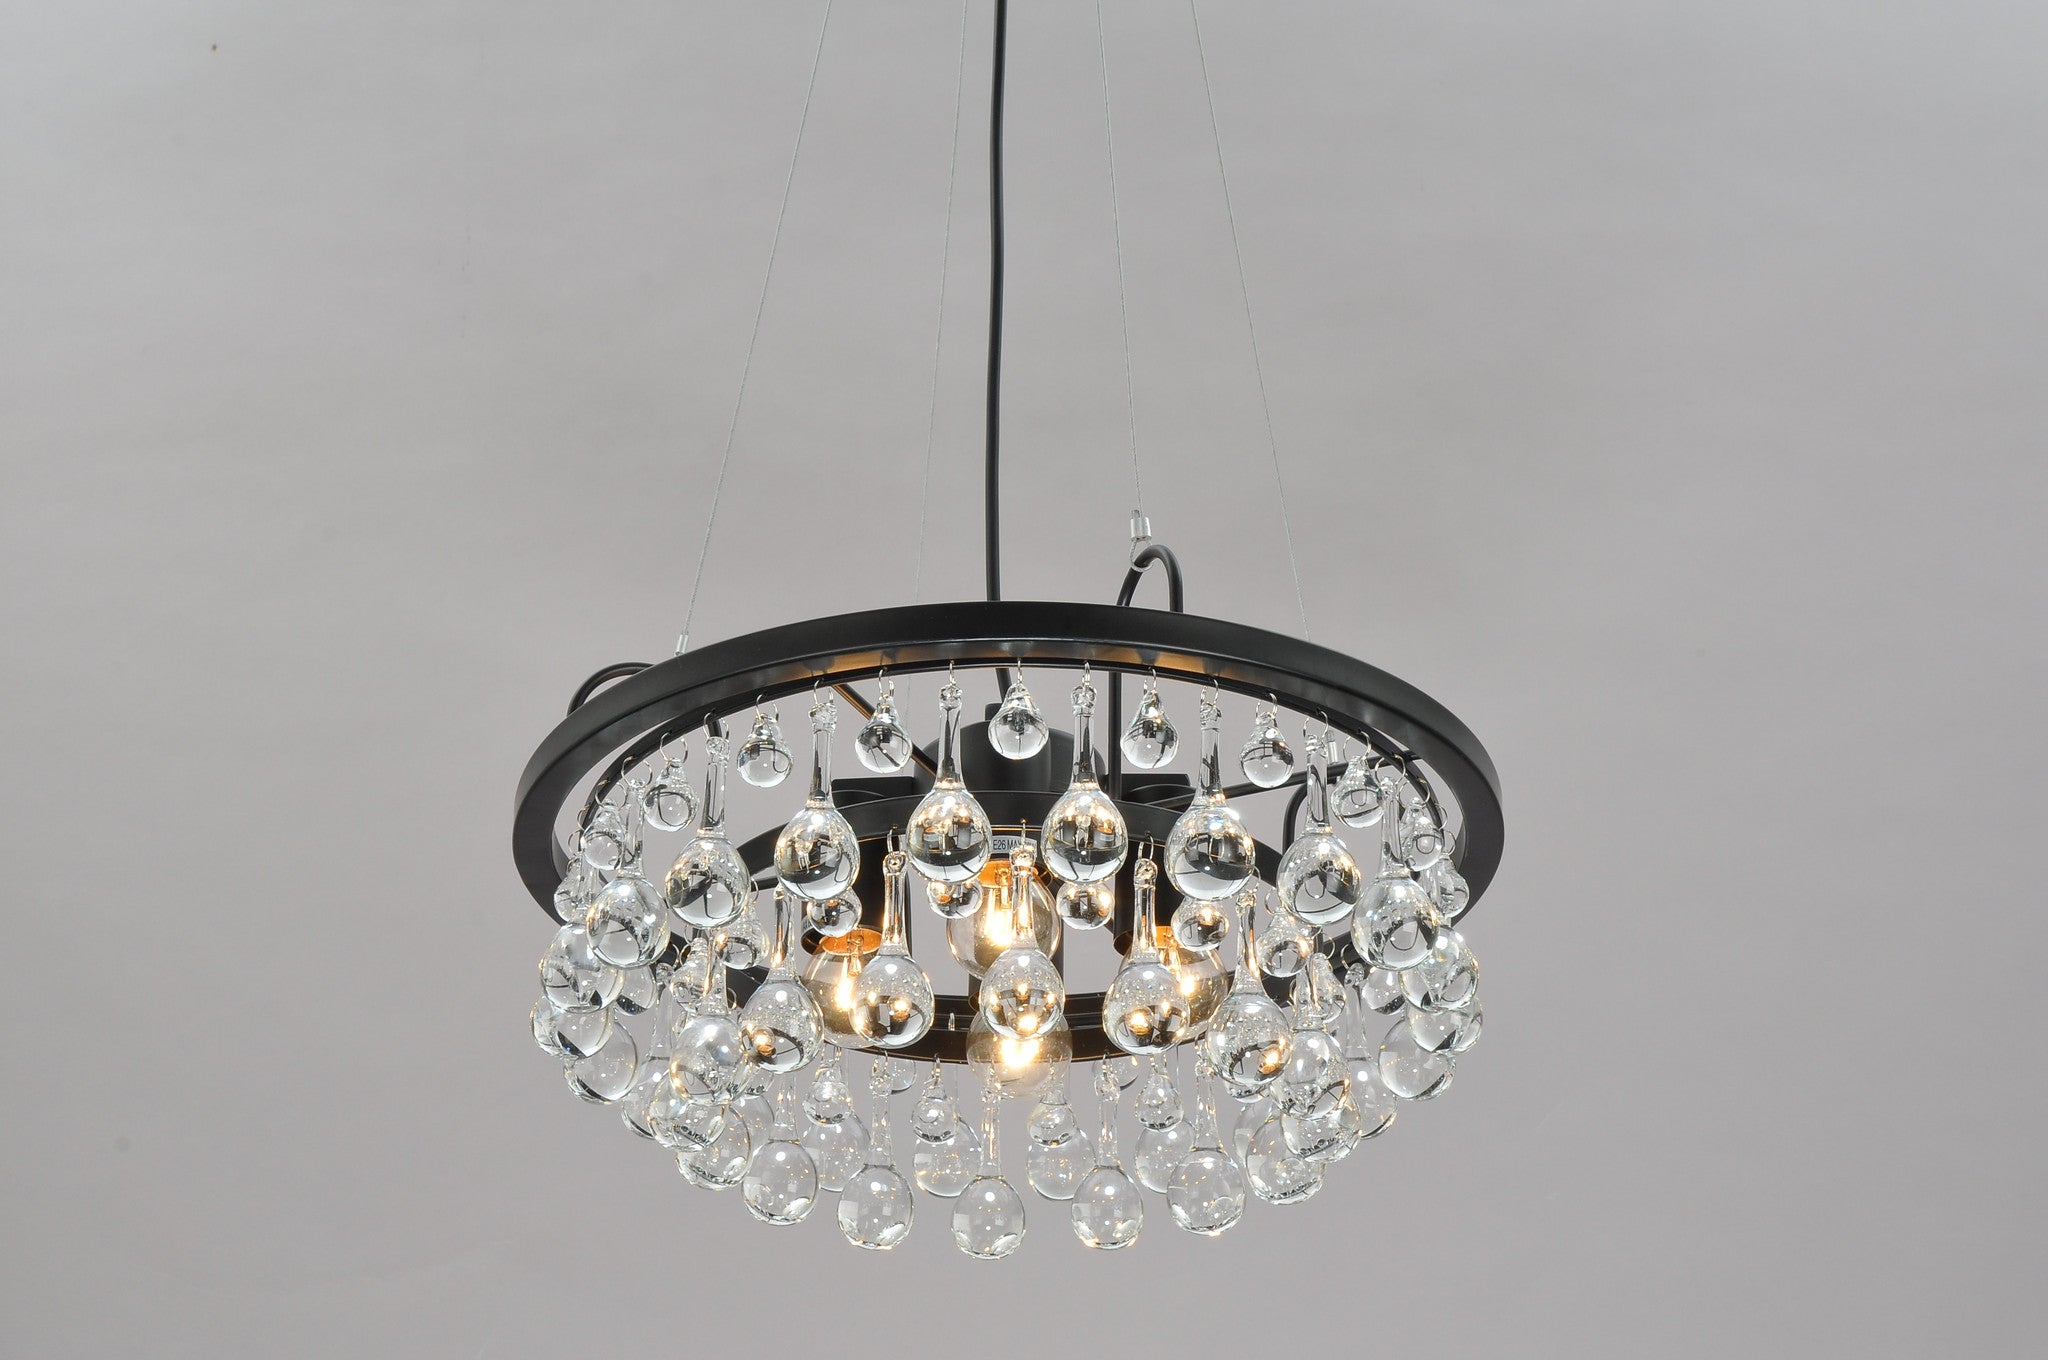 divineducation photo home com lighting of pendant crystal small ball light ursula best luxury